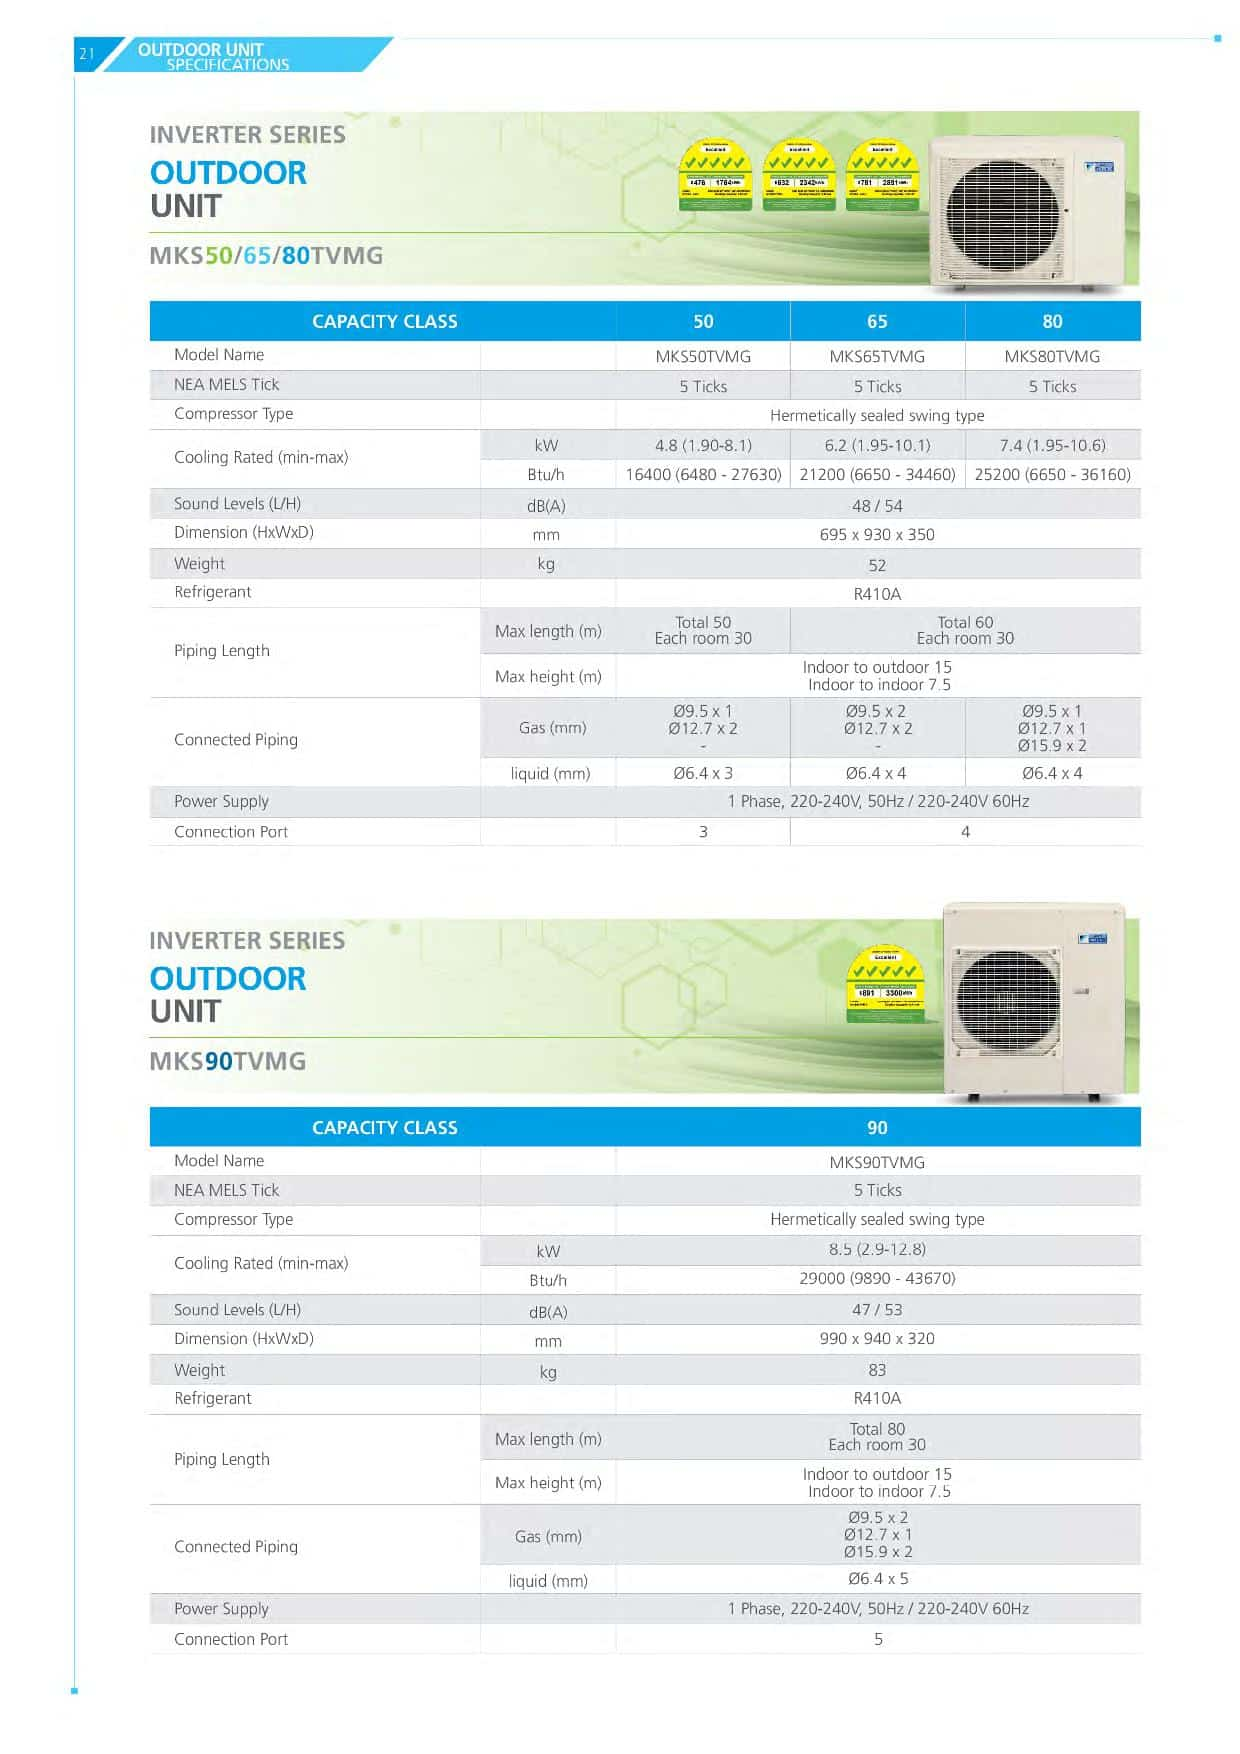 daikin ismiles catalogue